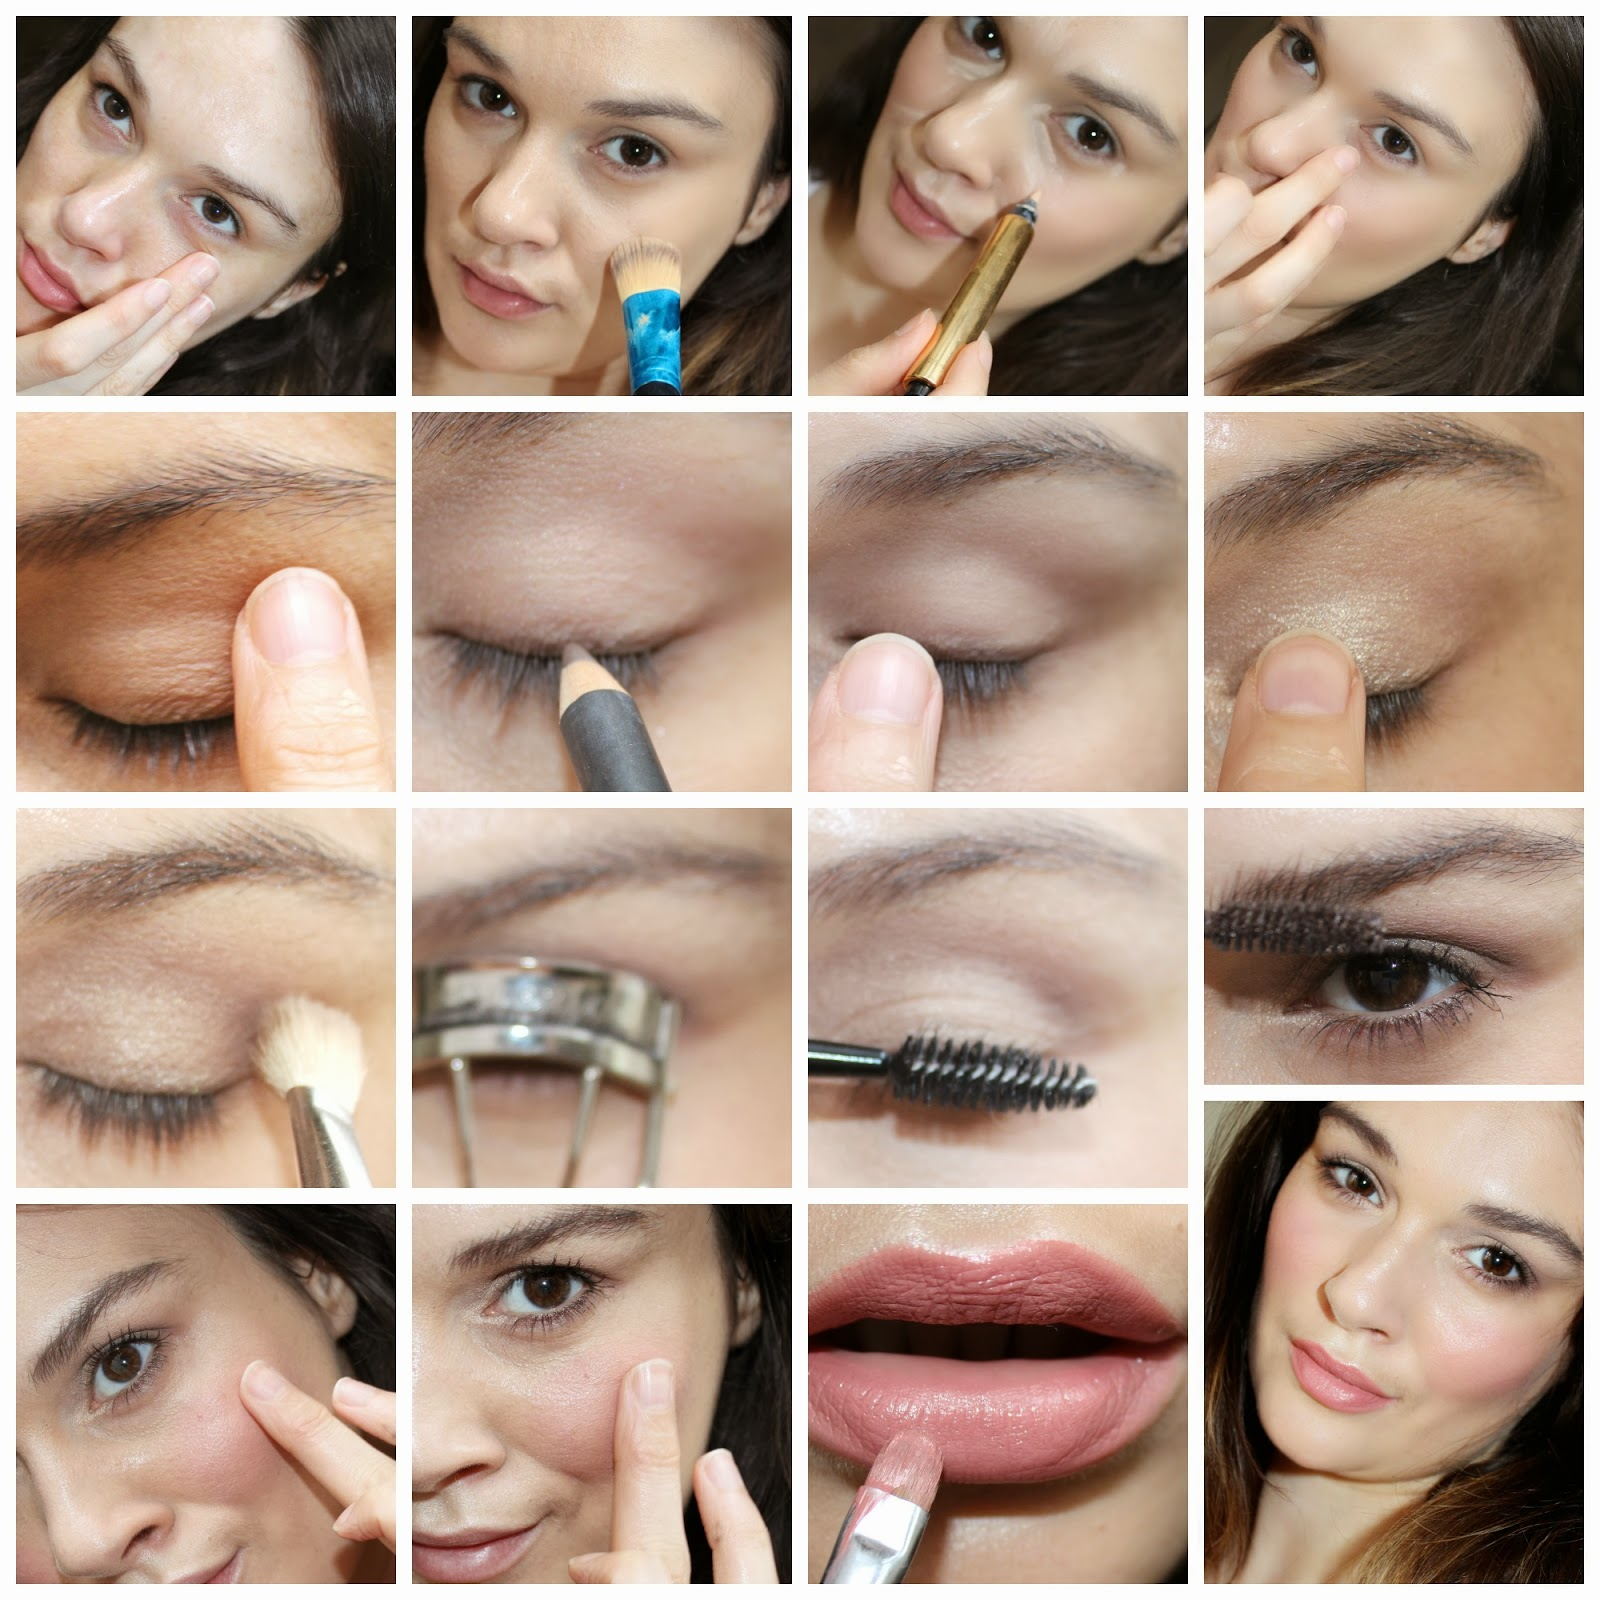 Amazoncom eye makeup tutorial step by step Appstore for